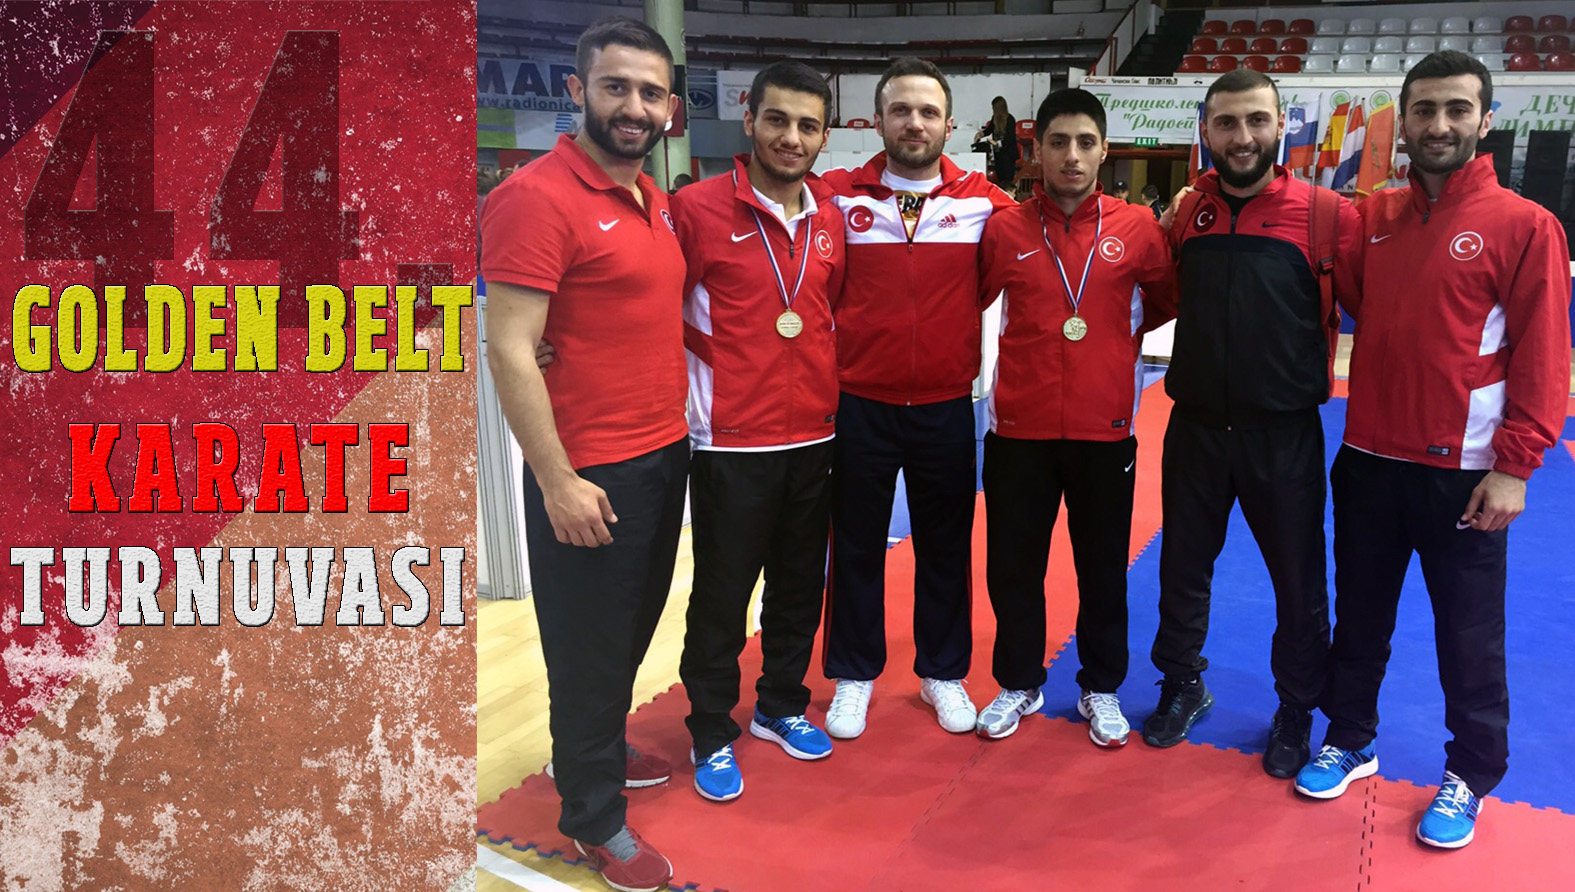 'GOLDEN BELT'TE İKİ ALTIN MADALYA KAZANDIK